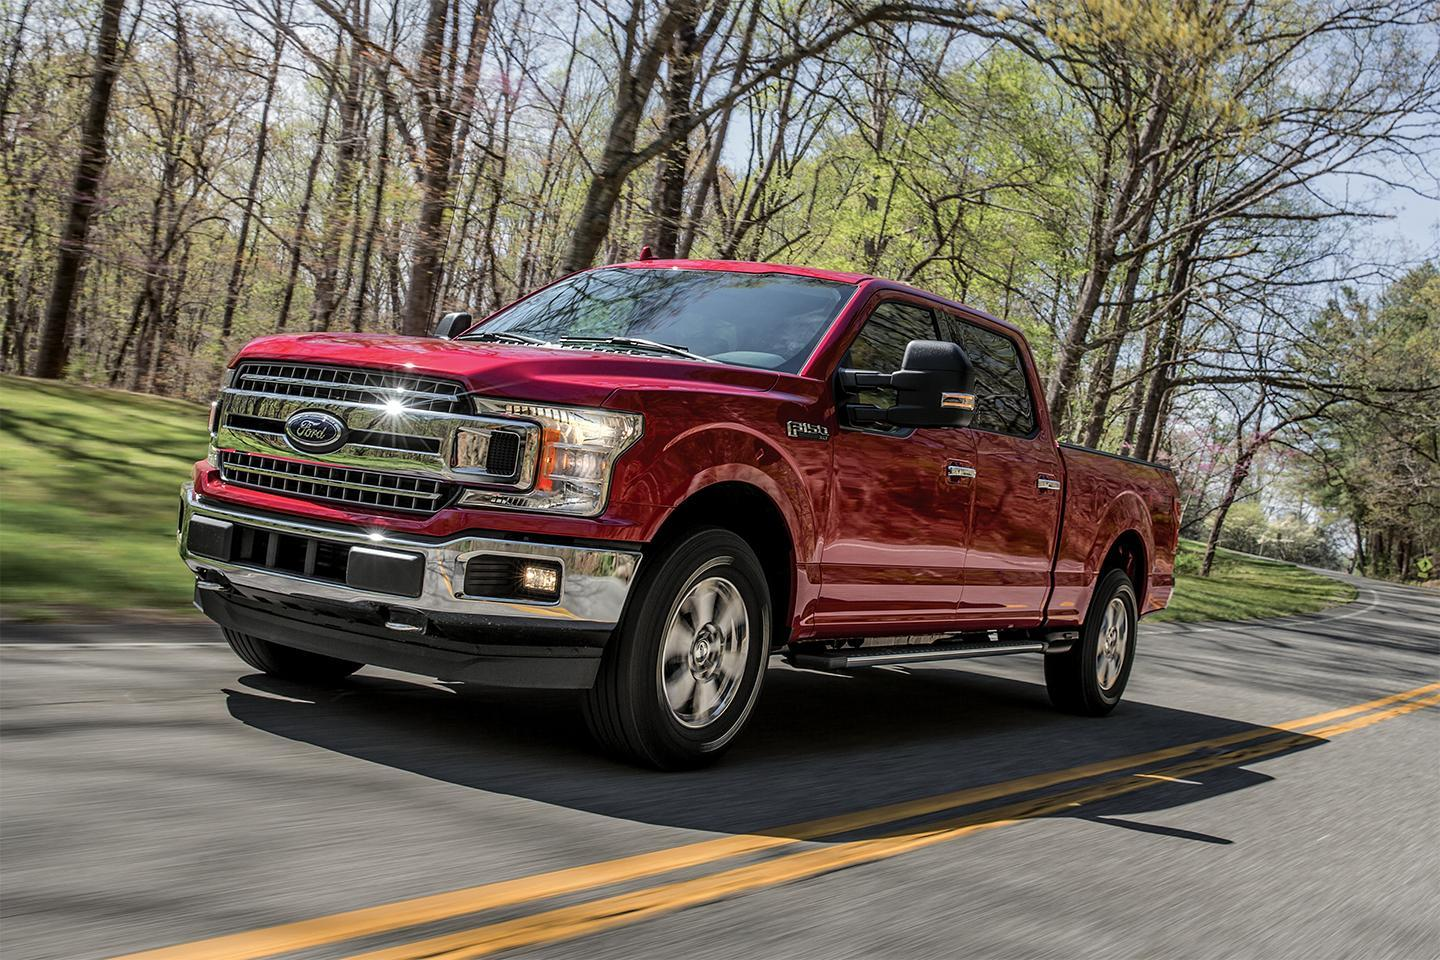 Ford & Lincoln 2020 F-150 image